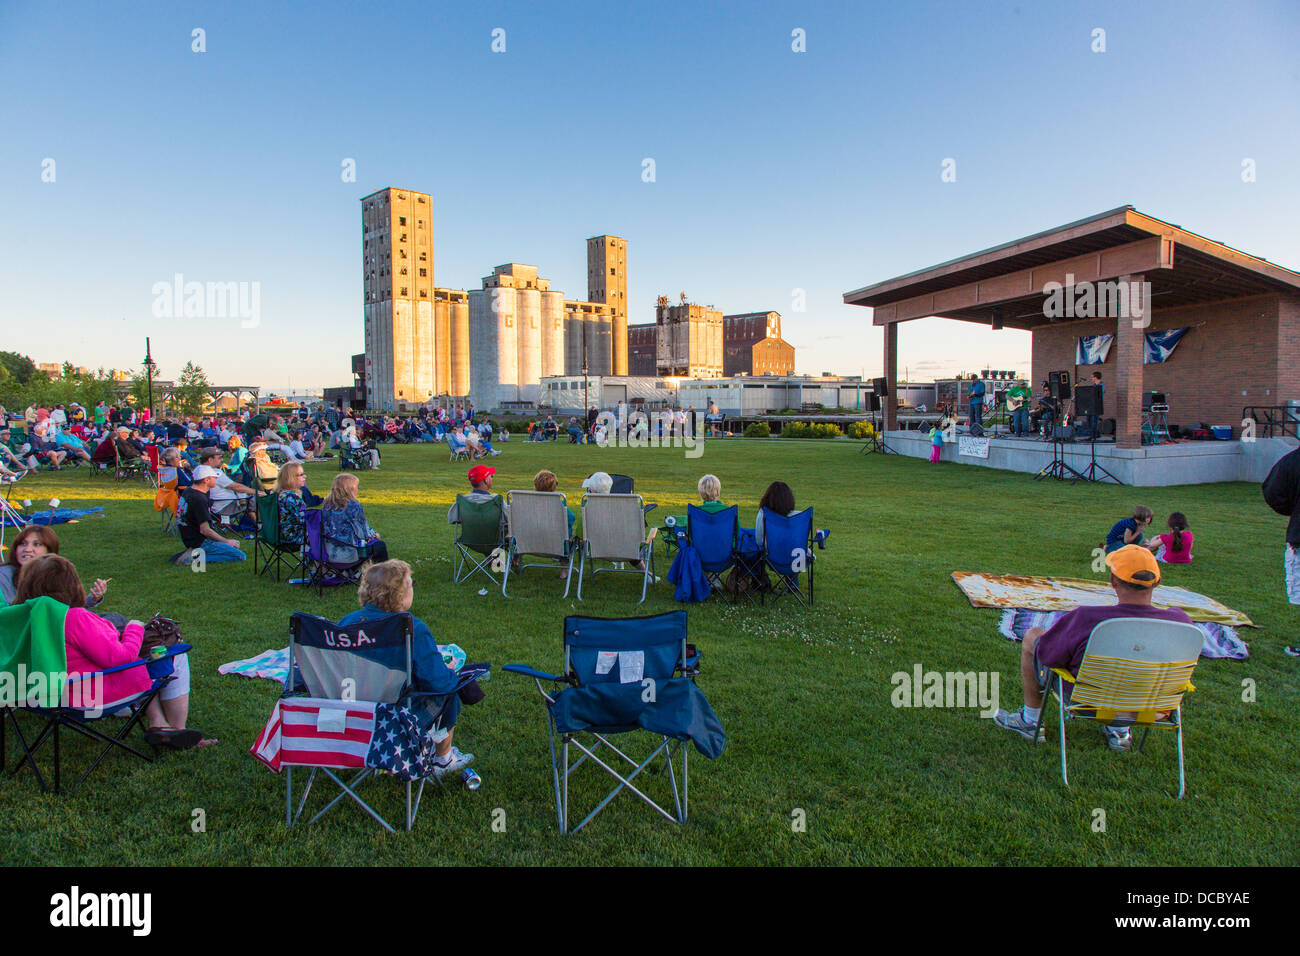 Outdoor music concert at River Fest Park in Buffalo New York United States - Stock Image